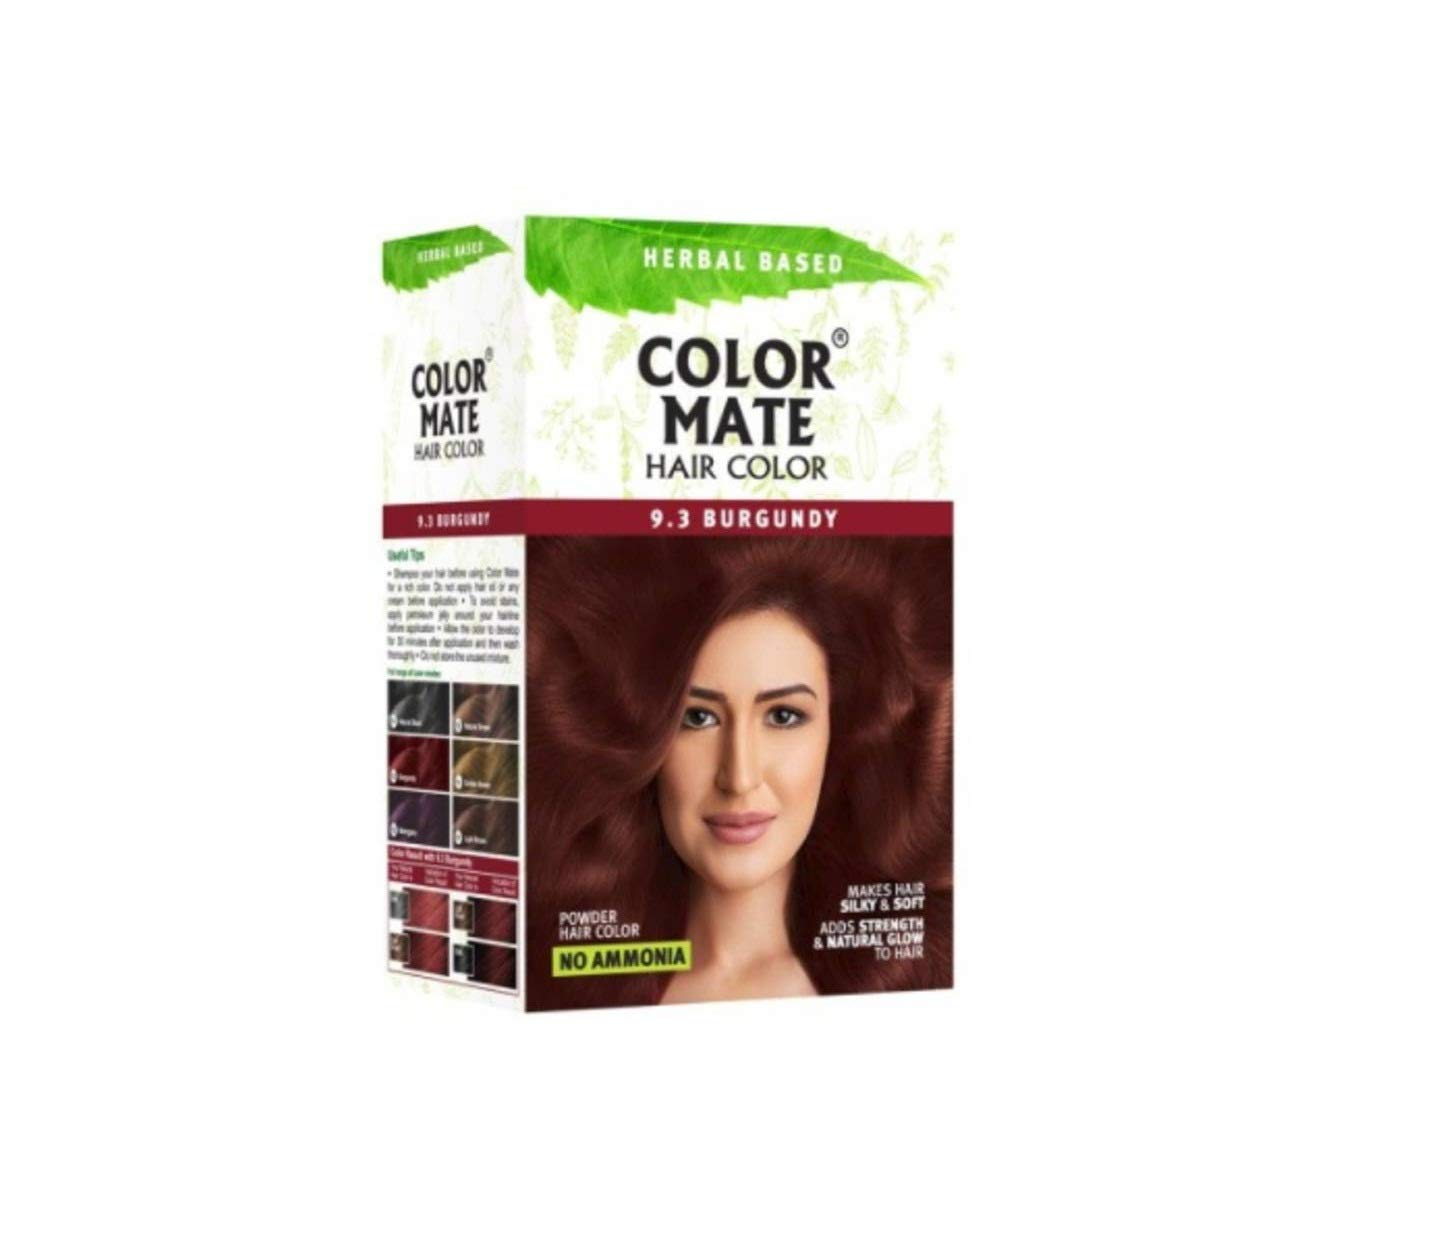 Color Mate Herbal Based Ammonia Free Hair Color with Ayur Product in Combo (9.3-Burgundy)